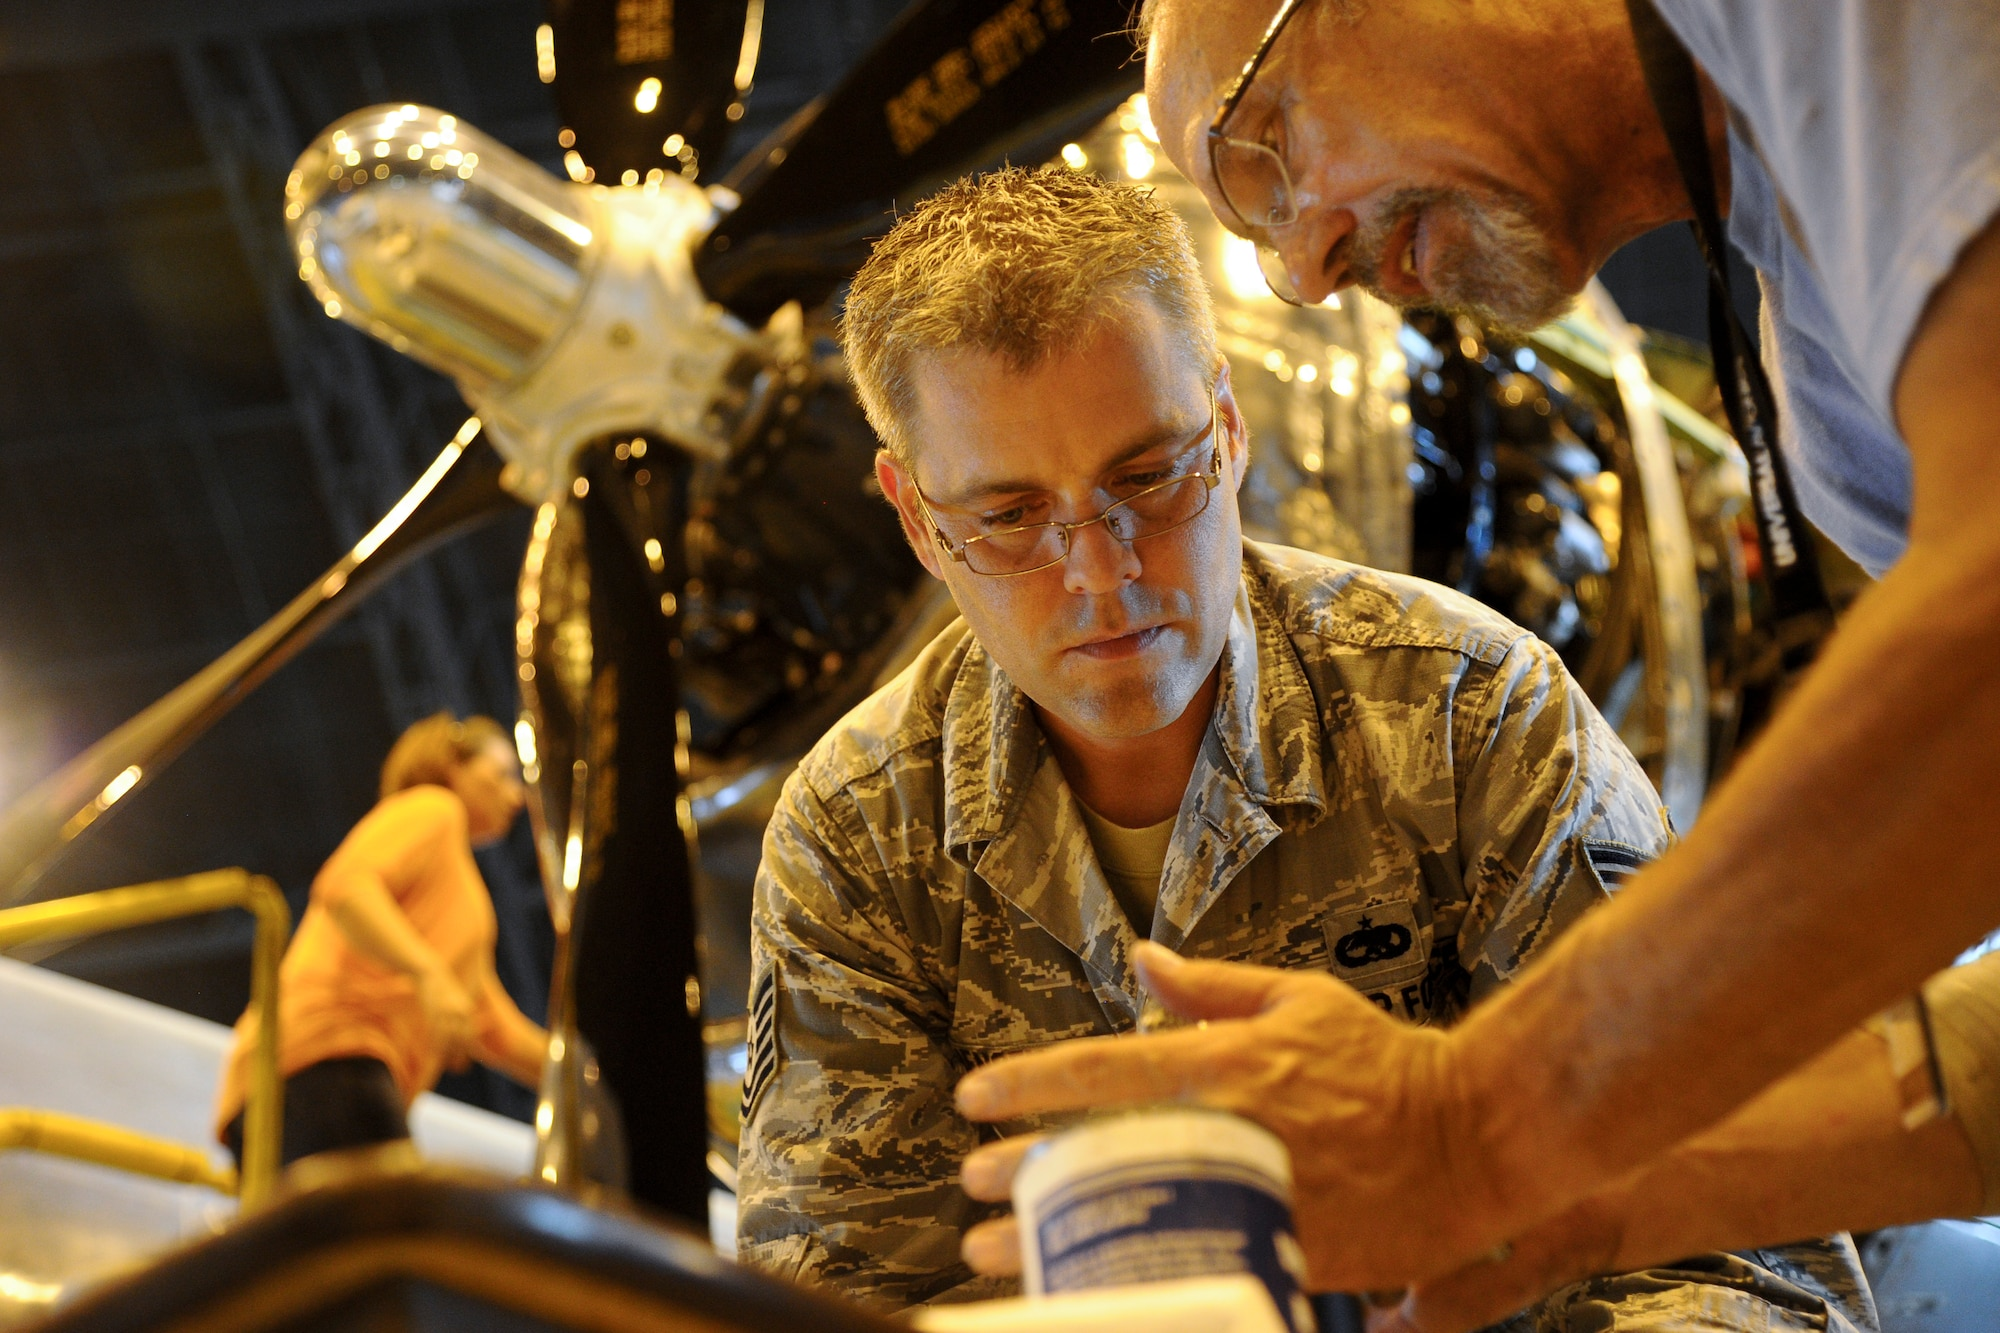 Tech. Sgt. Geoffrey Jensen places a cap on a fuel booster pump of a Boeing B-29 Superfortress, July 22, 2014, in Wichita, Kansas. Jensen along with many other volunteers are restoring the B-29 to flying condition. Jensen is the 22nd Maintenance Group logistic resource management program NCO in charge. (U.S. Air Force photo/Airman 1st Class John Linzmeier)